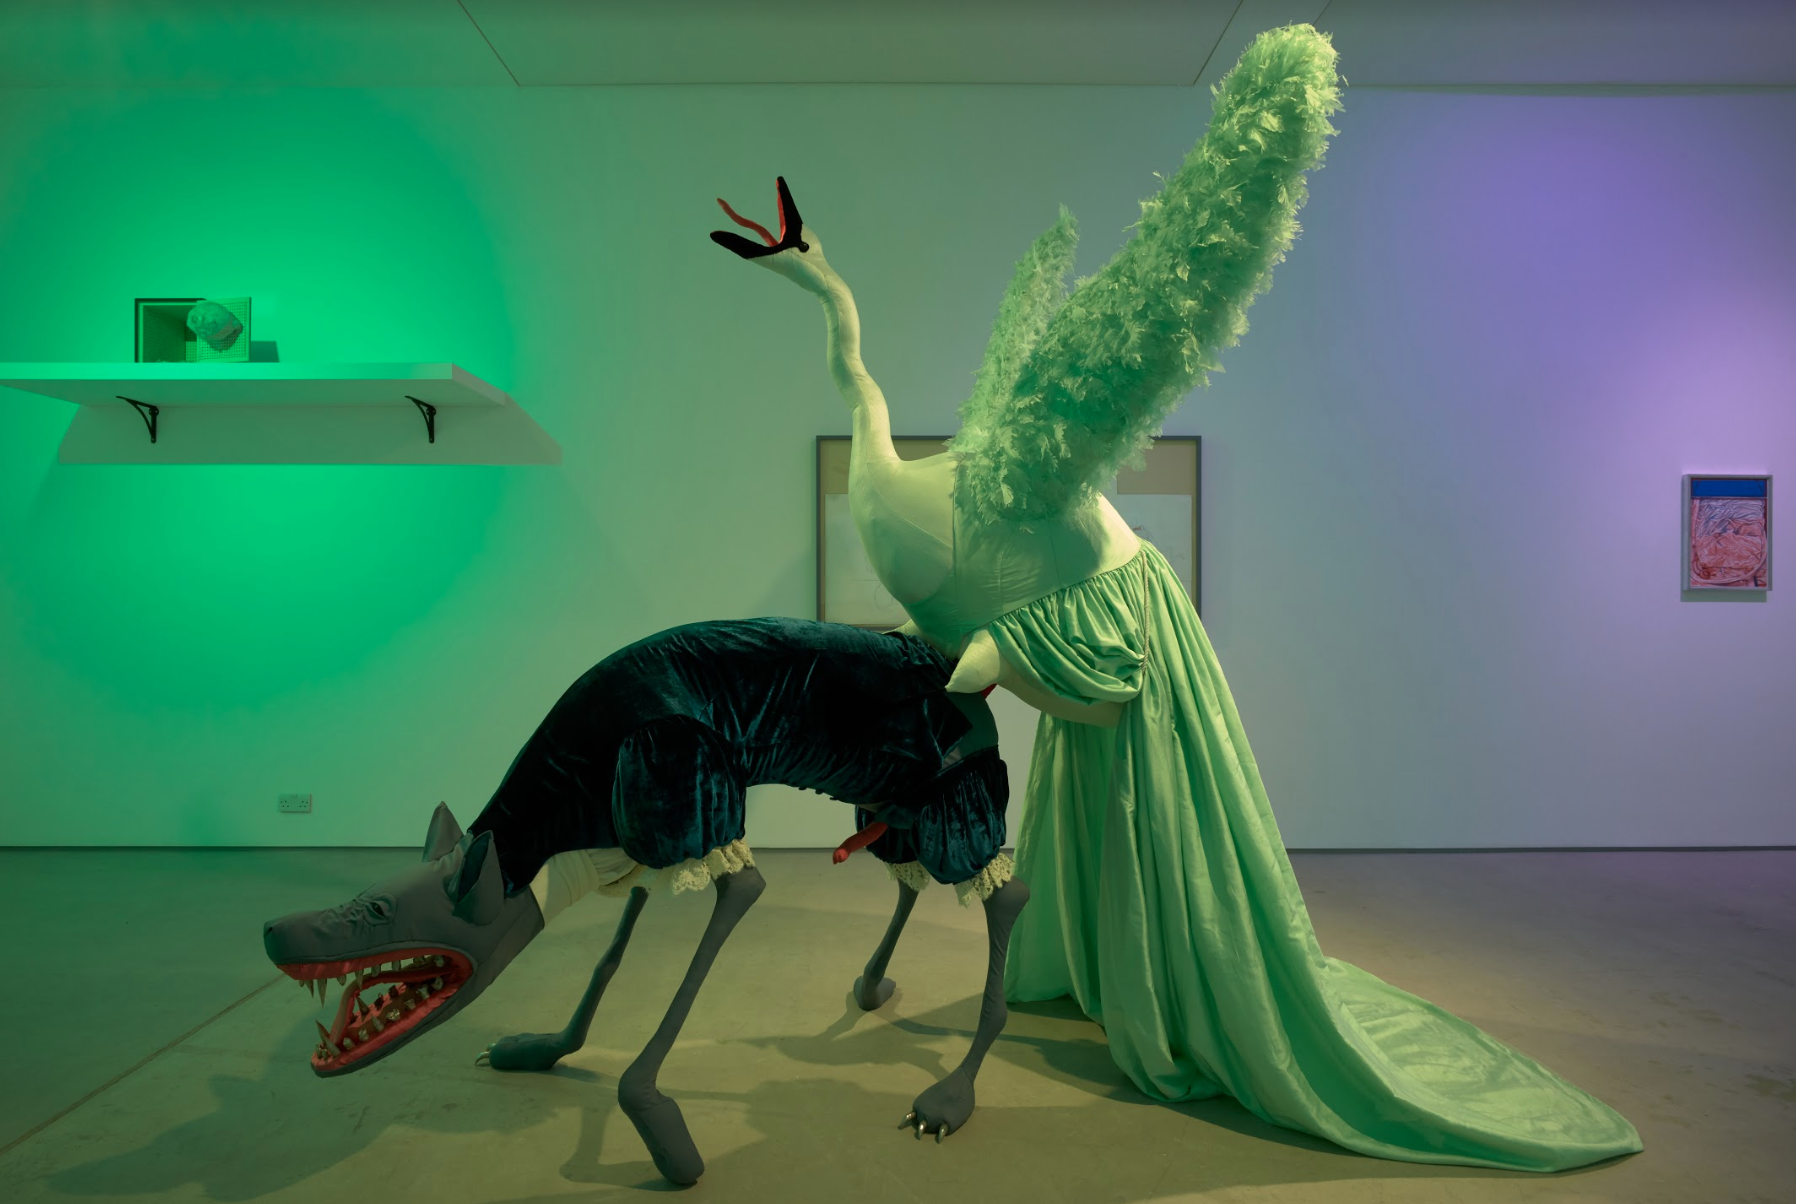 Marianna Simnett,  Hyena and Swan in the Midst of Sexual Congress , 2019. Installation view:  My Head is a Haunted House, curated by Charlie Fox , Sadie Coles HQ, Kingly Street, London. Photo: Robert Glowacki